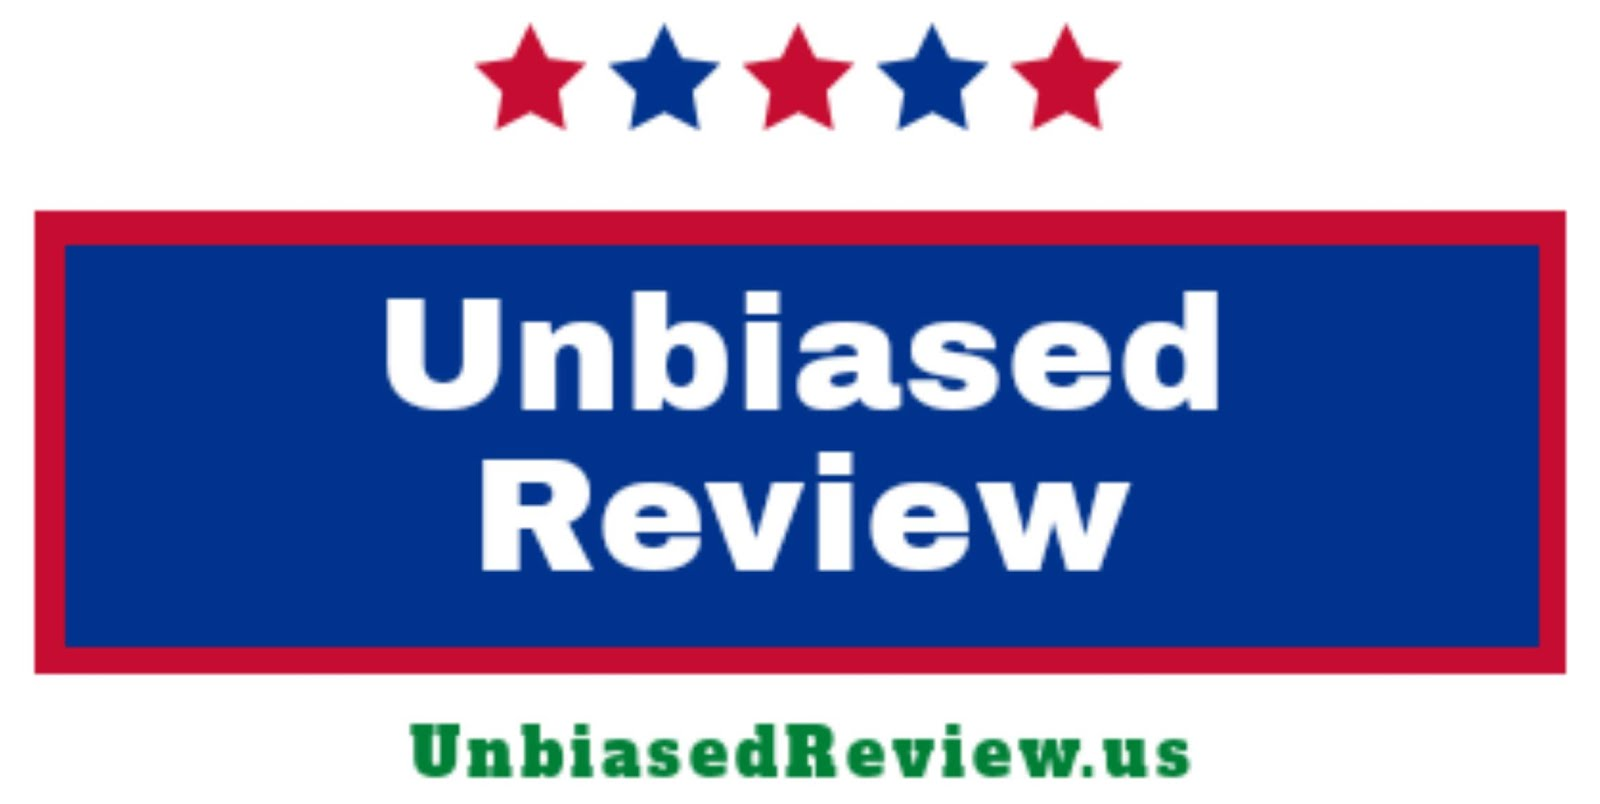 Unbiased Review